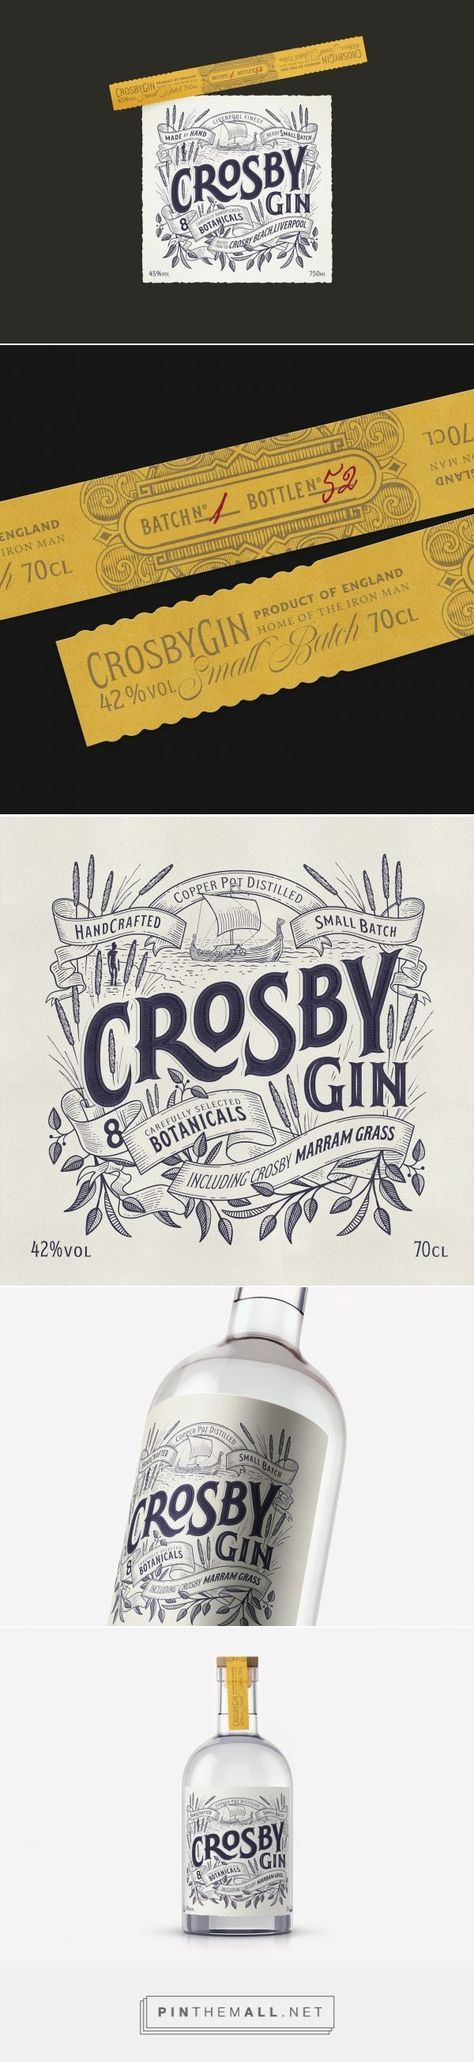 Crosby Gin - Packaging